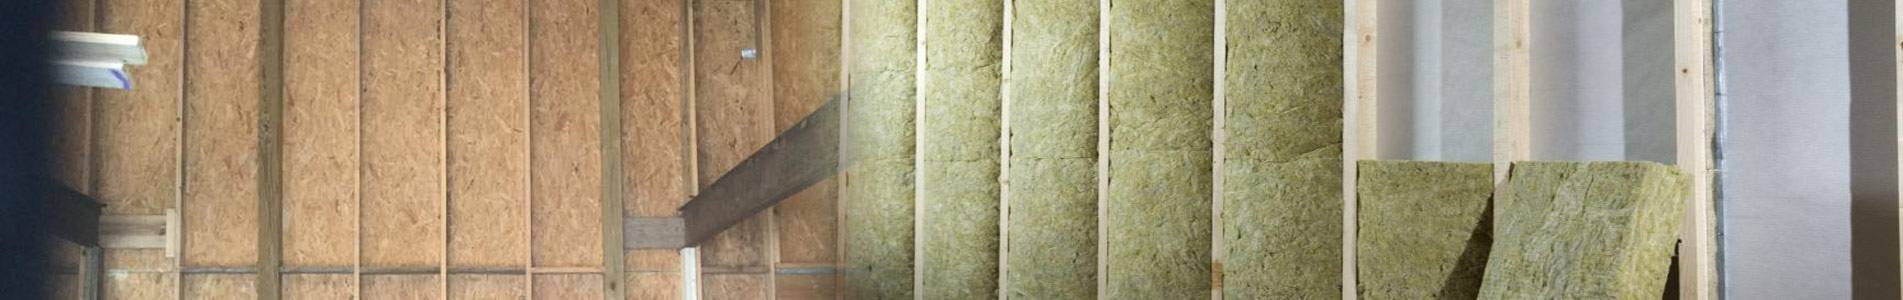 Wall Insulation Near Charleston, Lexington, Georgetown